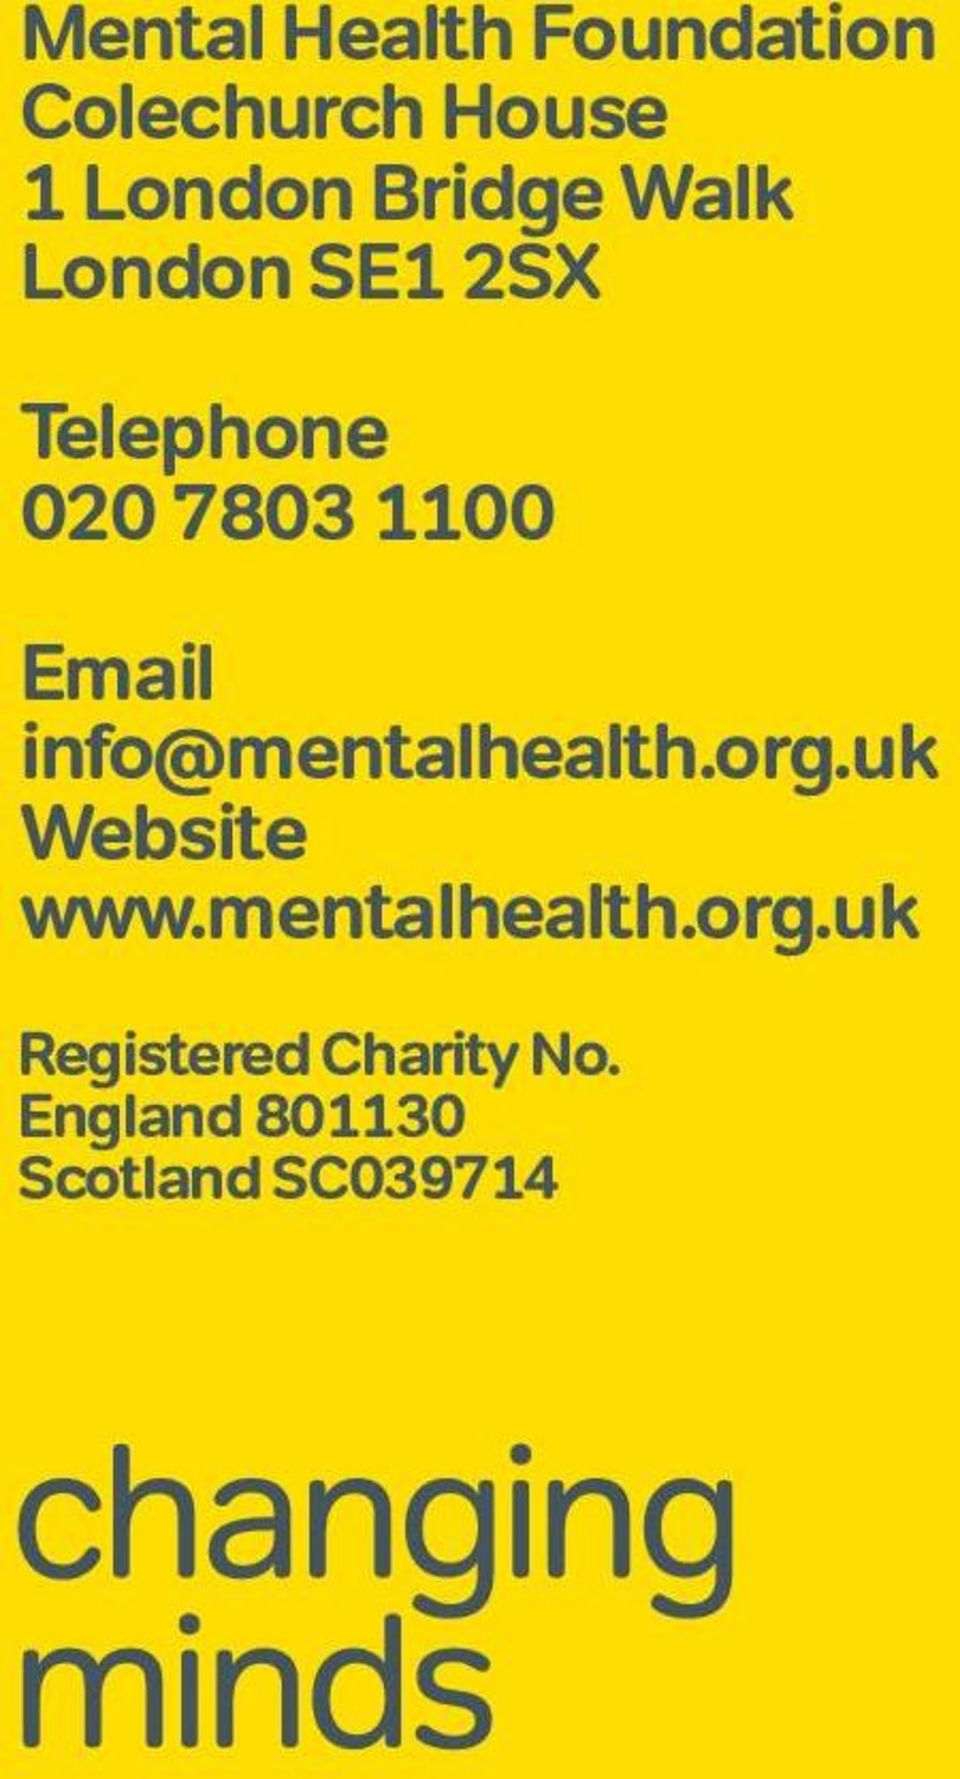 Email info@mentalhealth.org.uk Website www.